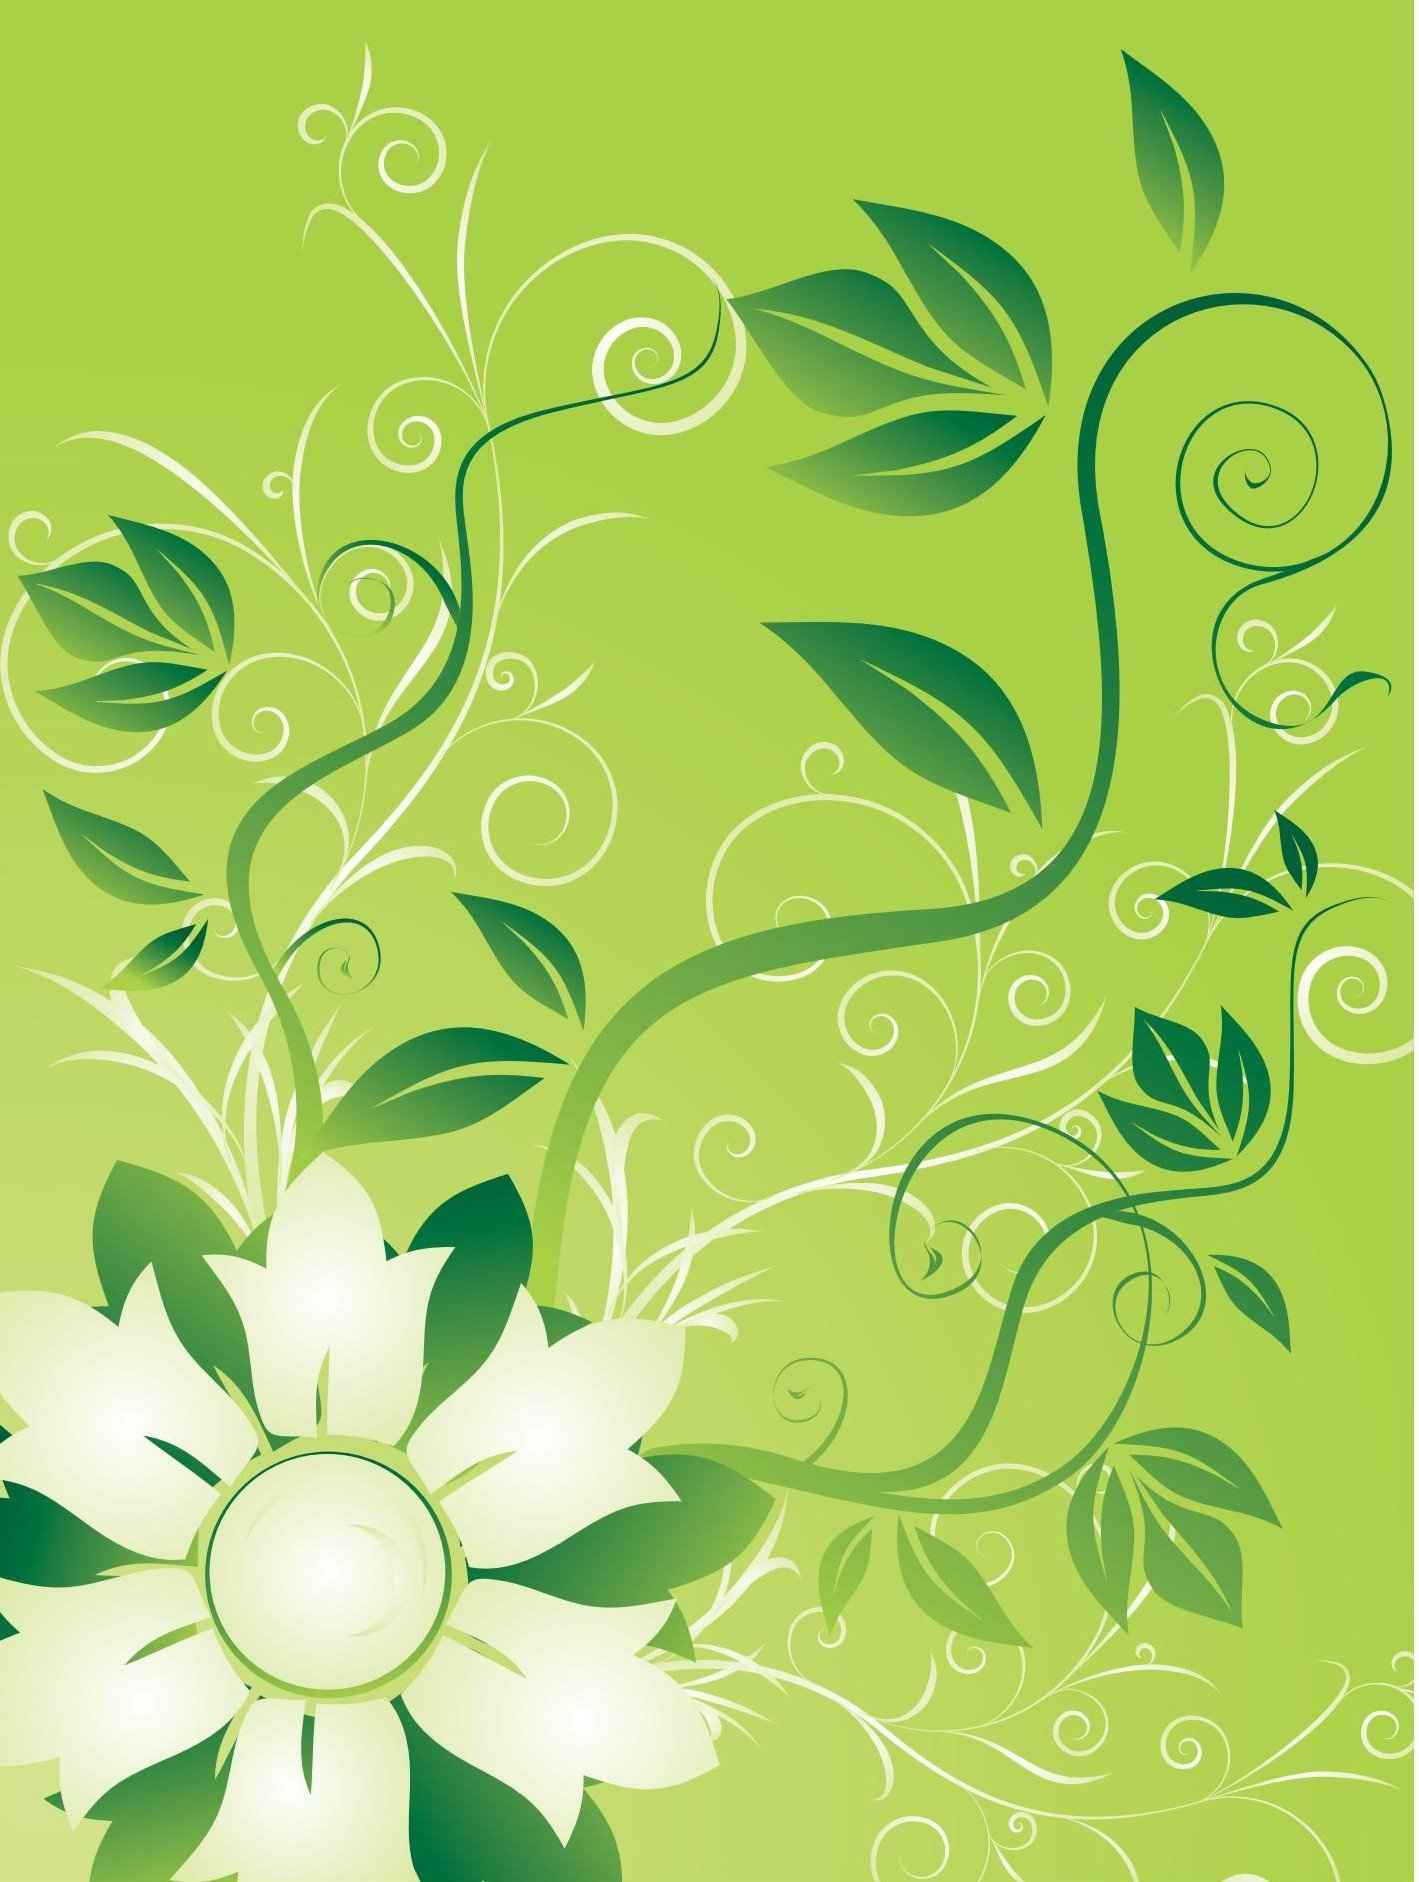 Flowers and Swirls png